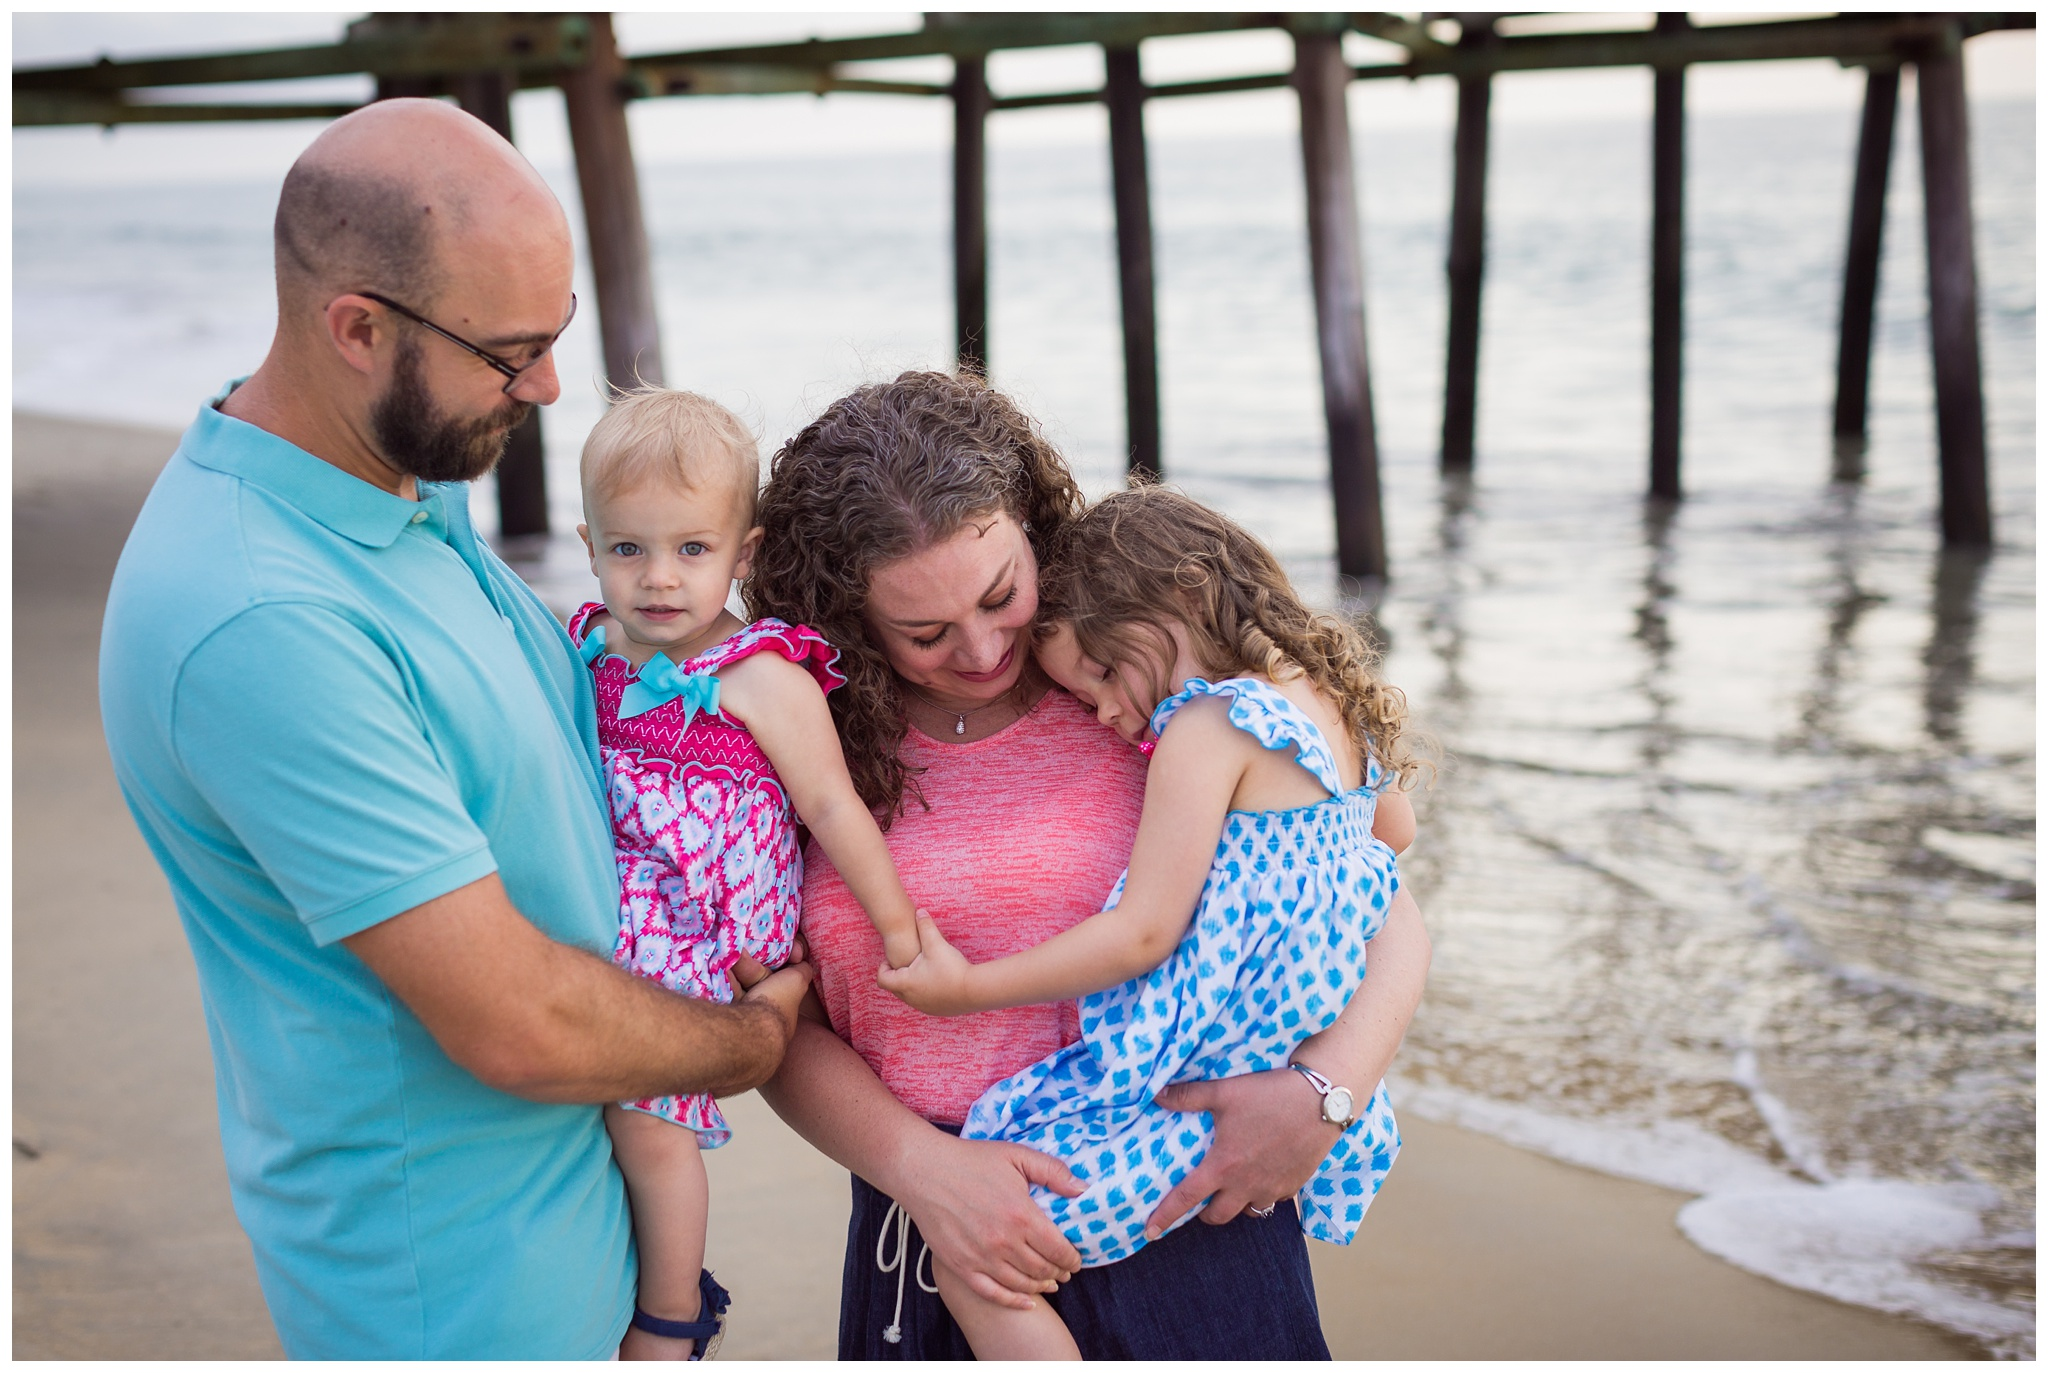 Virginia-Beach-Family-Photographer-2.jpg